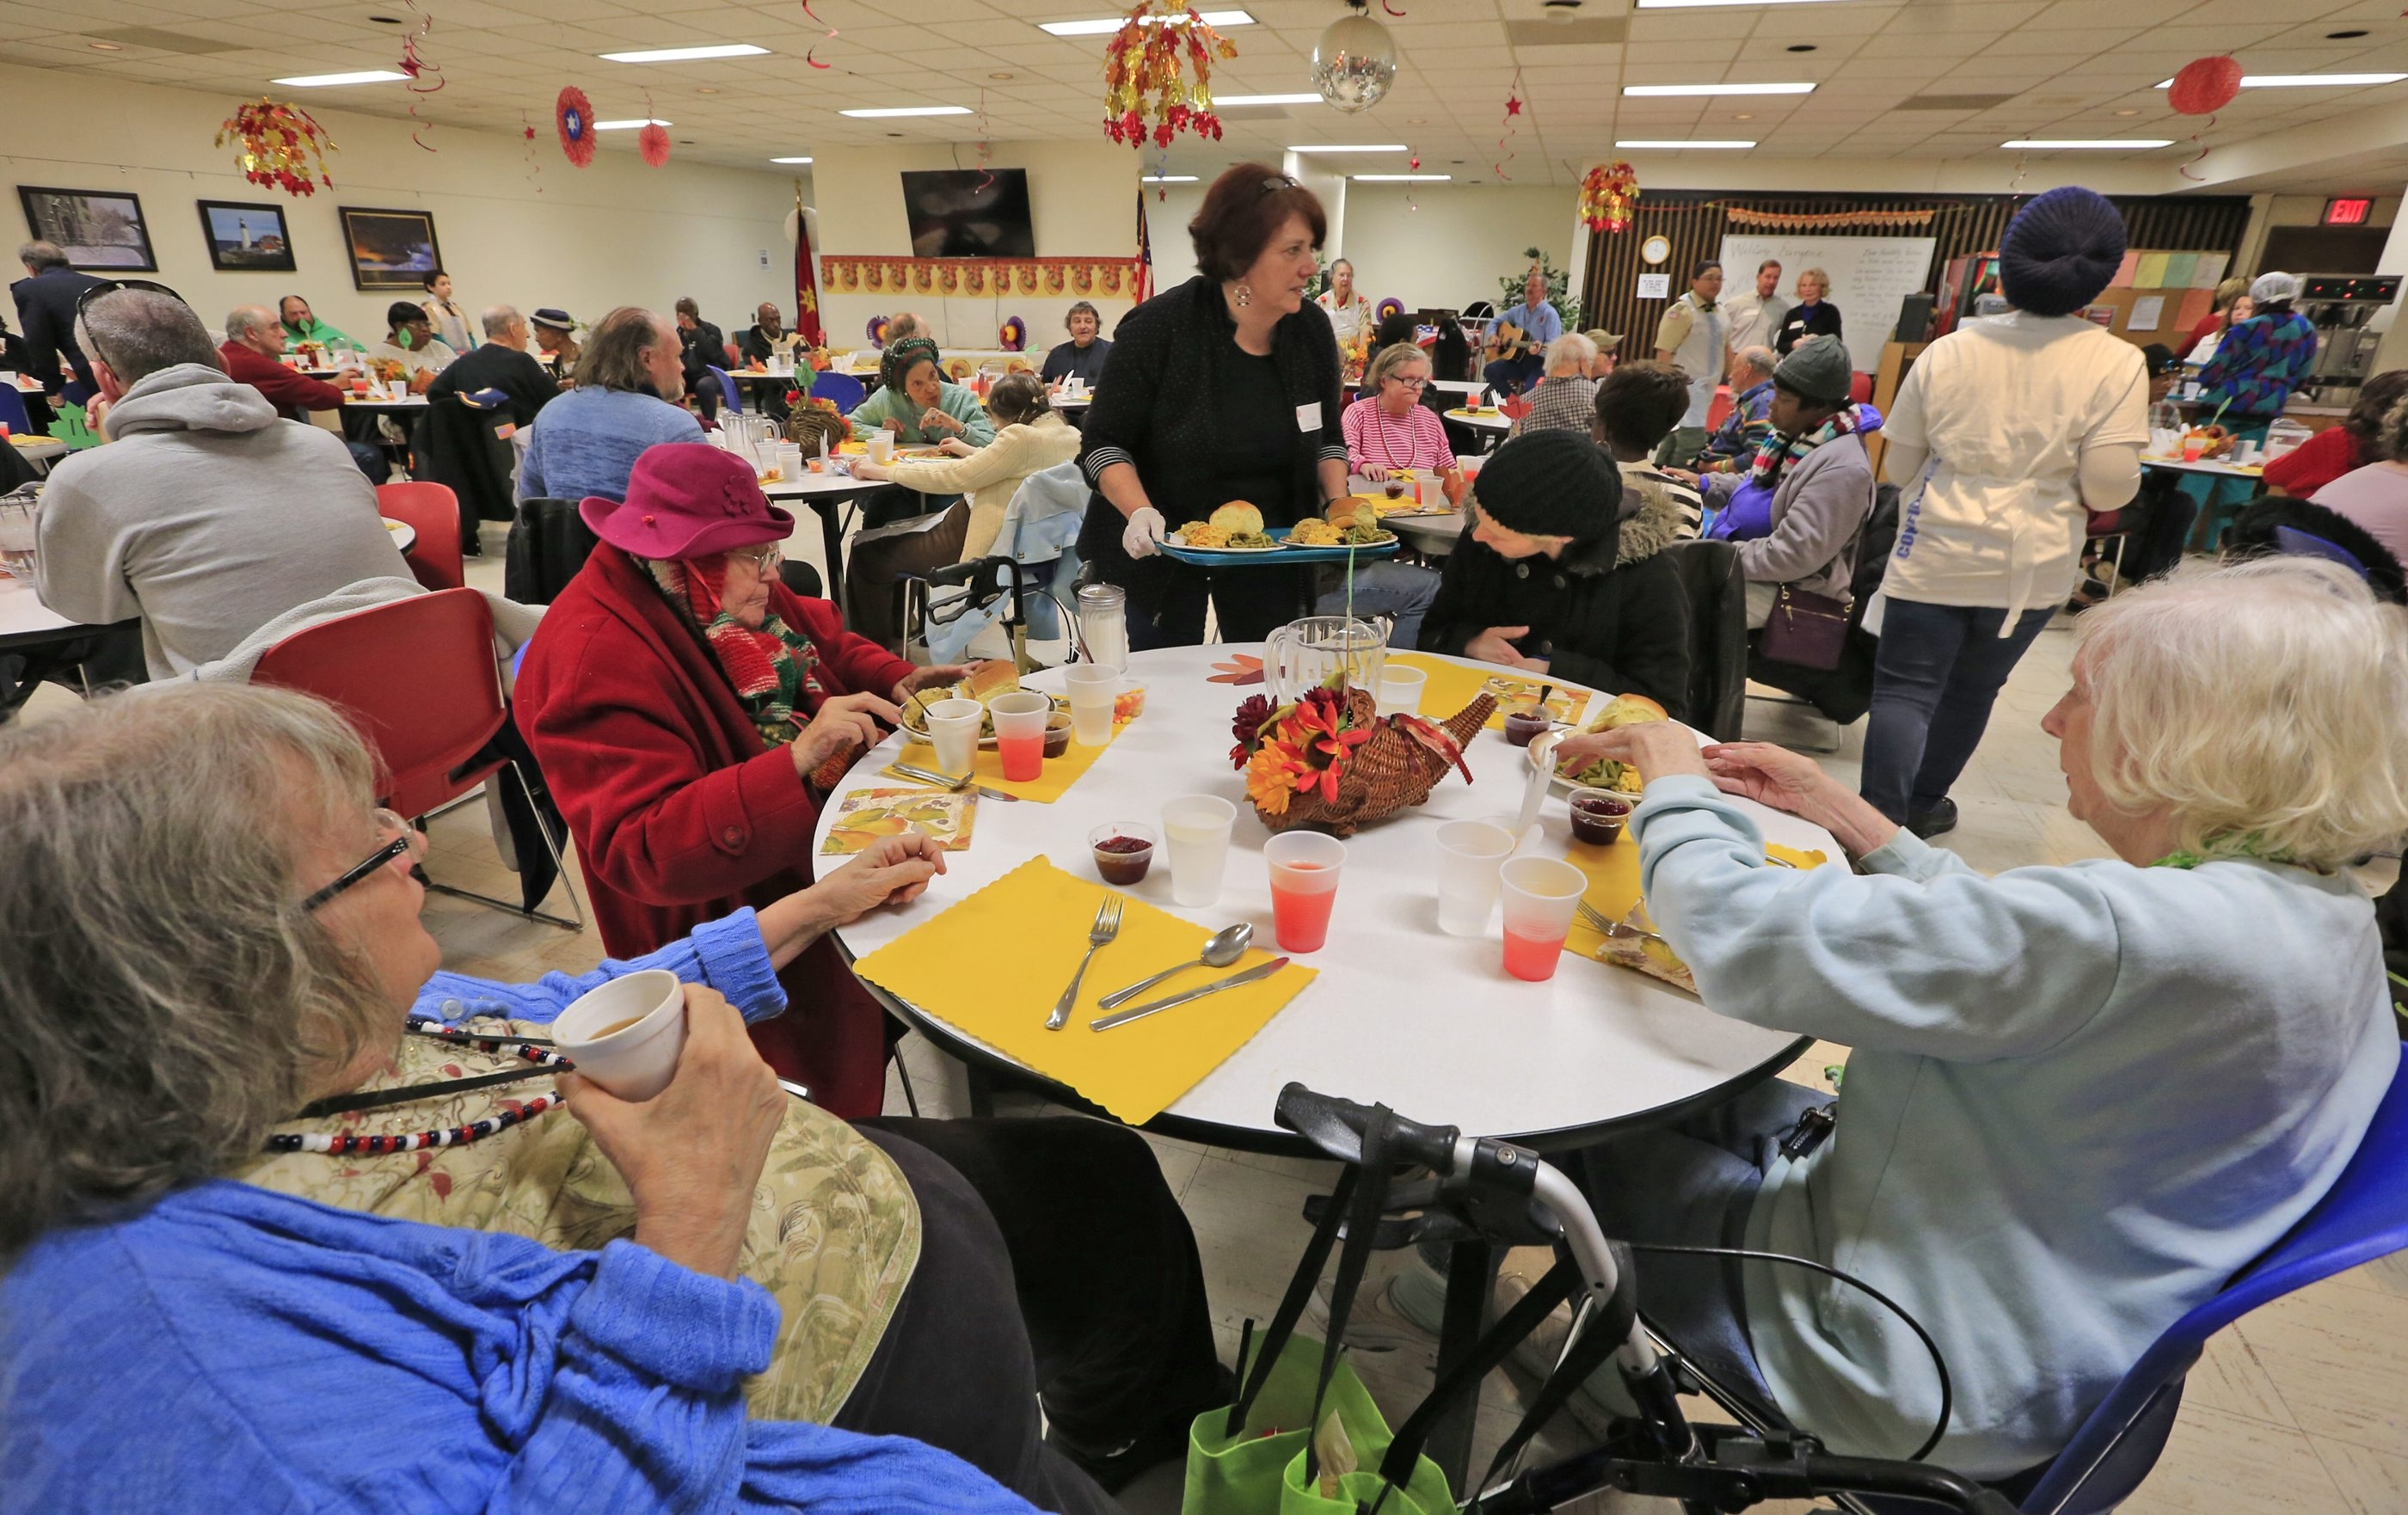 Cory Dussault, center, serves Thanksgiving dinner Thursday at the Salvation Army of Buffalo on Main Street. She and Mayor Byron W. Brown were among about 50 volunteers offering up food and fellowship to guests ranging from homeless people to families and senior citizens.